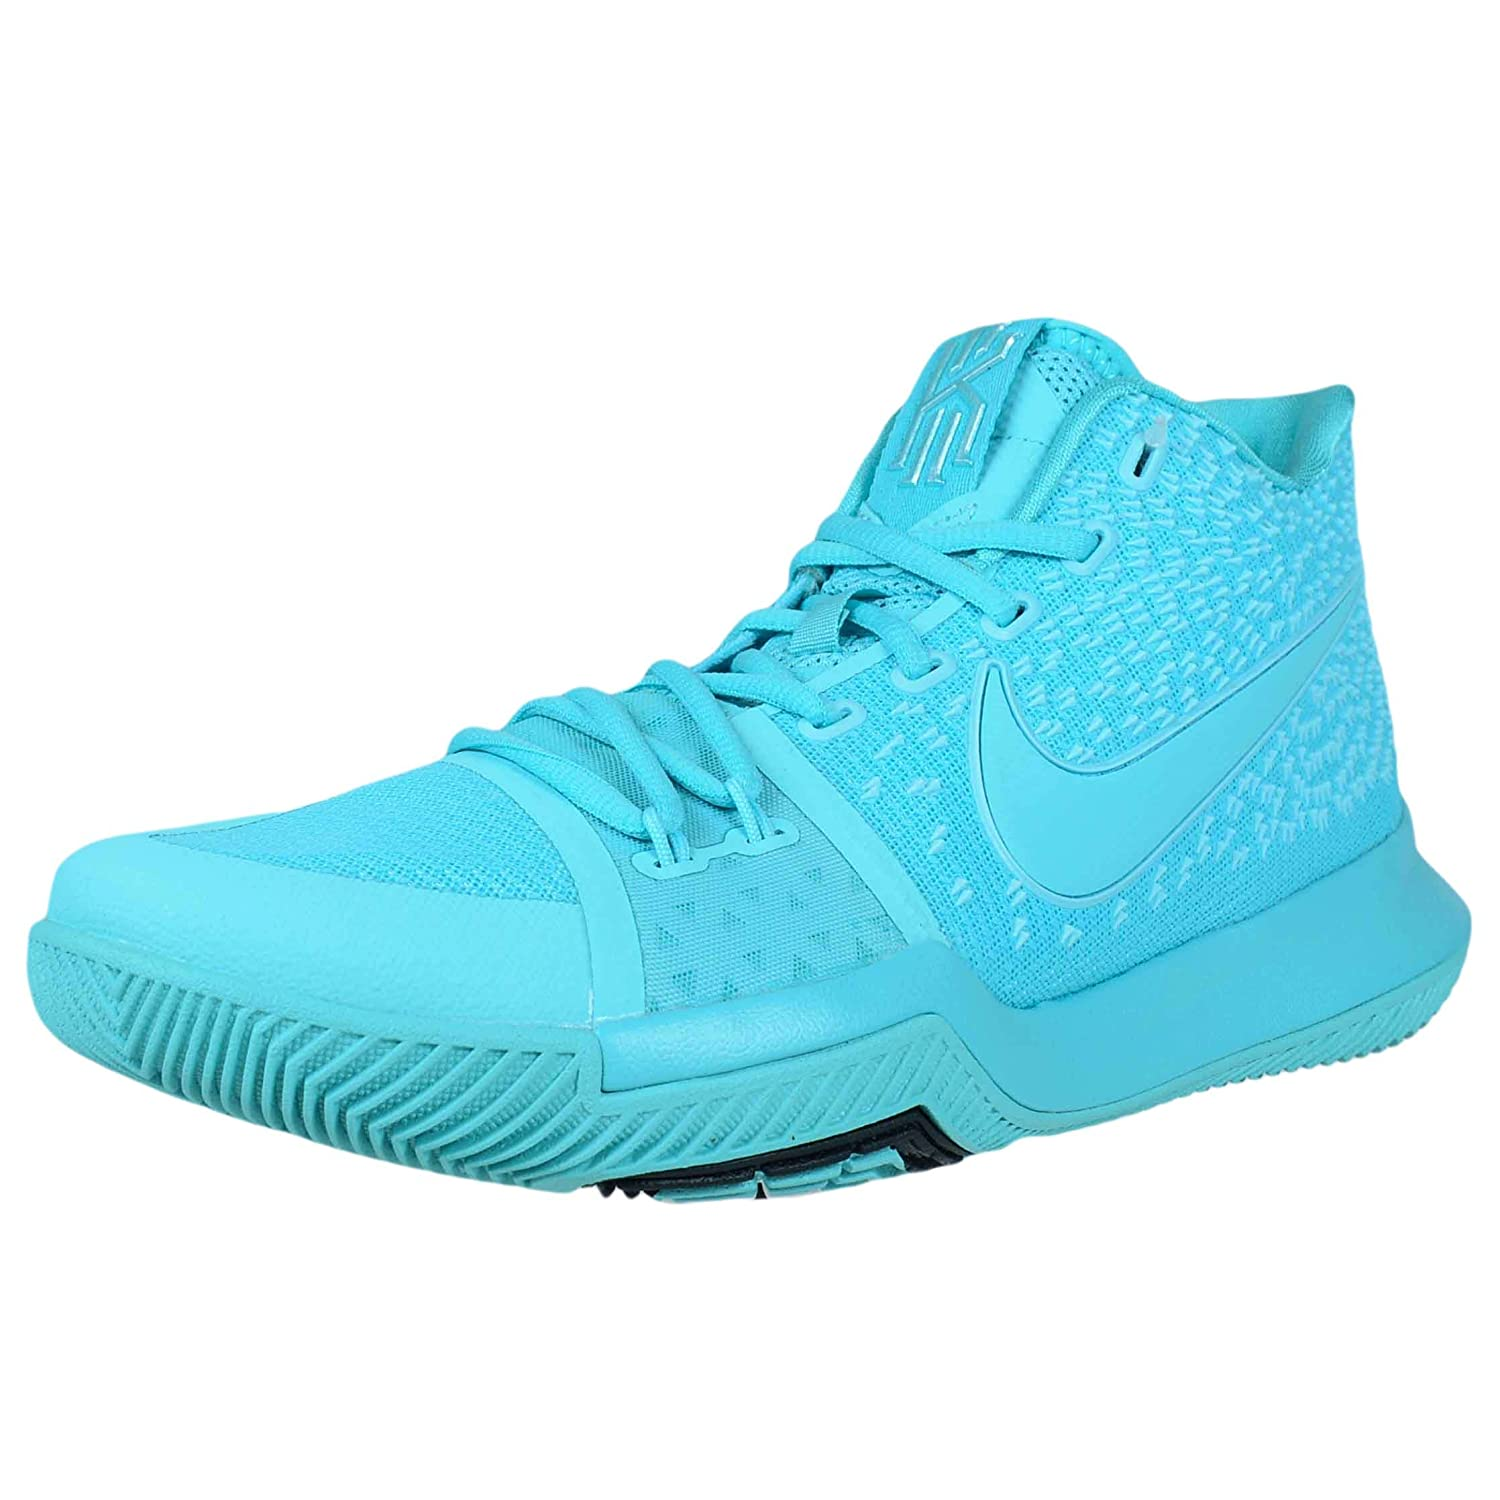 huge discount 10b22 602dc Nike Kyrie 3 Men's Basketball Shoes Aqua/Aqua-Black 852395 ...